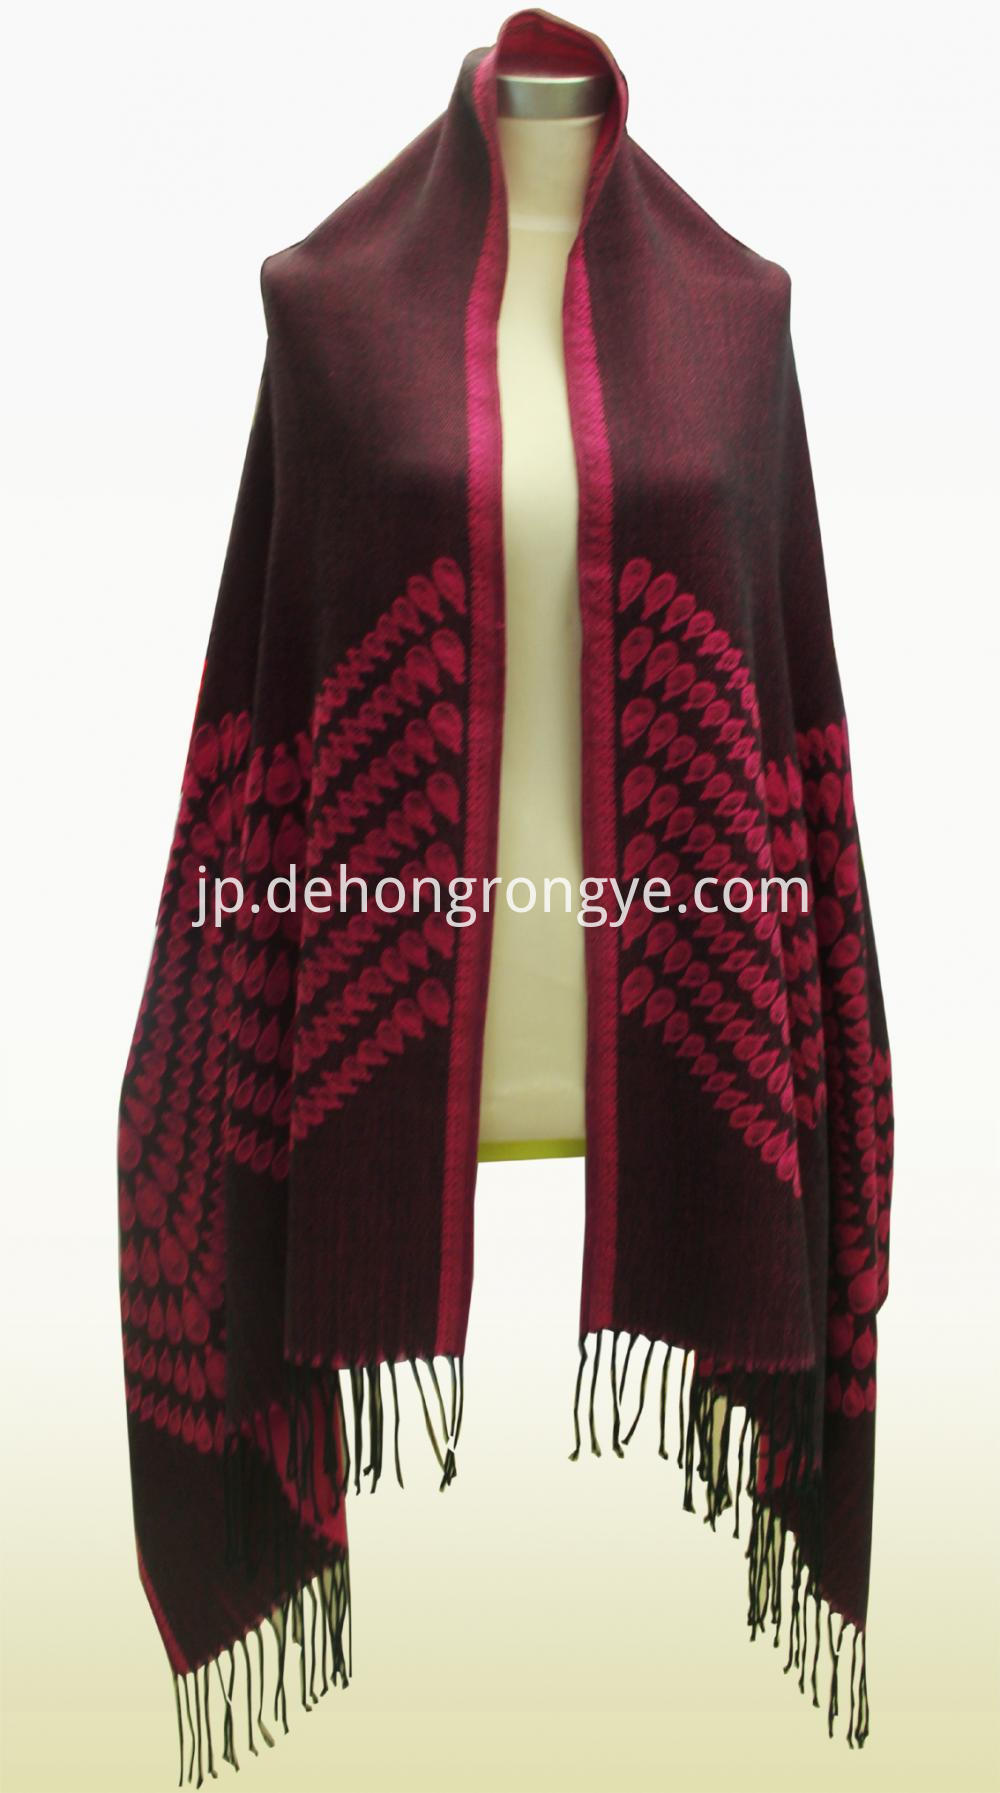 Wine Red Worsted Cashmere Jacquard Shawl